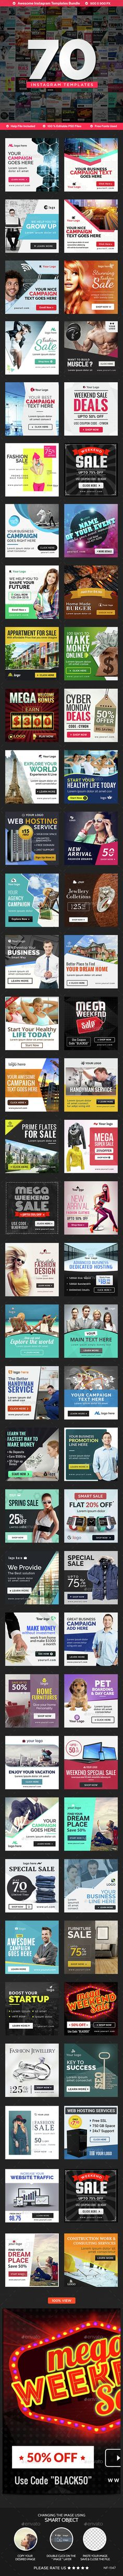 70 Banner for Instagram Template PSD. Download here: http://graphicriver.net/item/instagram-banners-70-banners/15278059?ref=ksioks